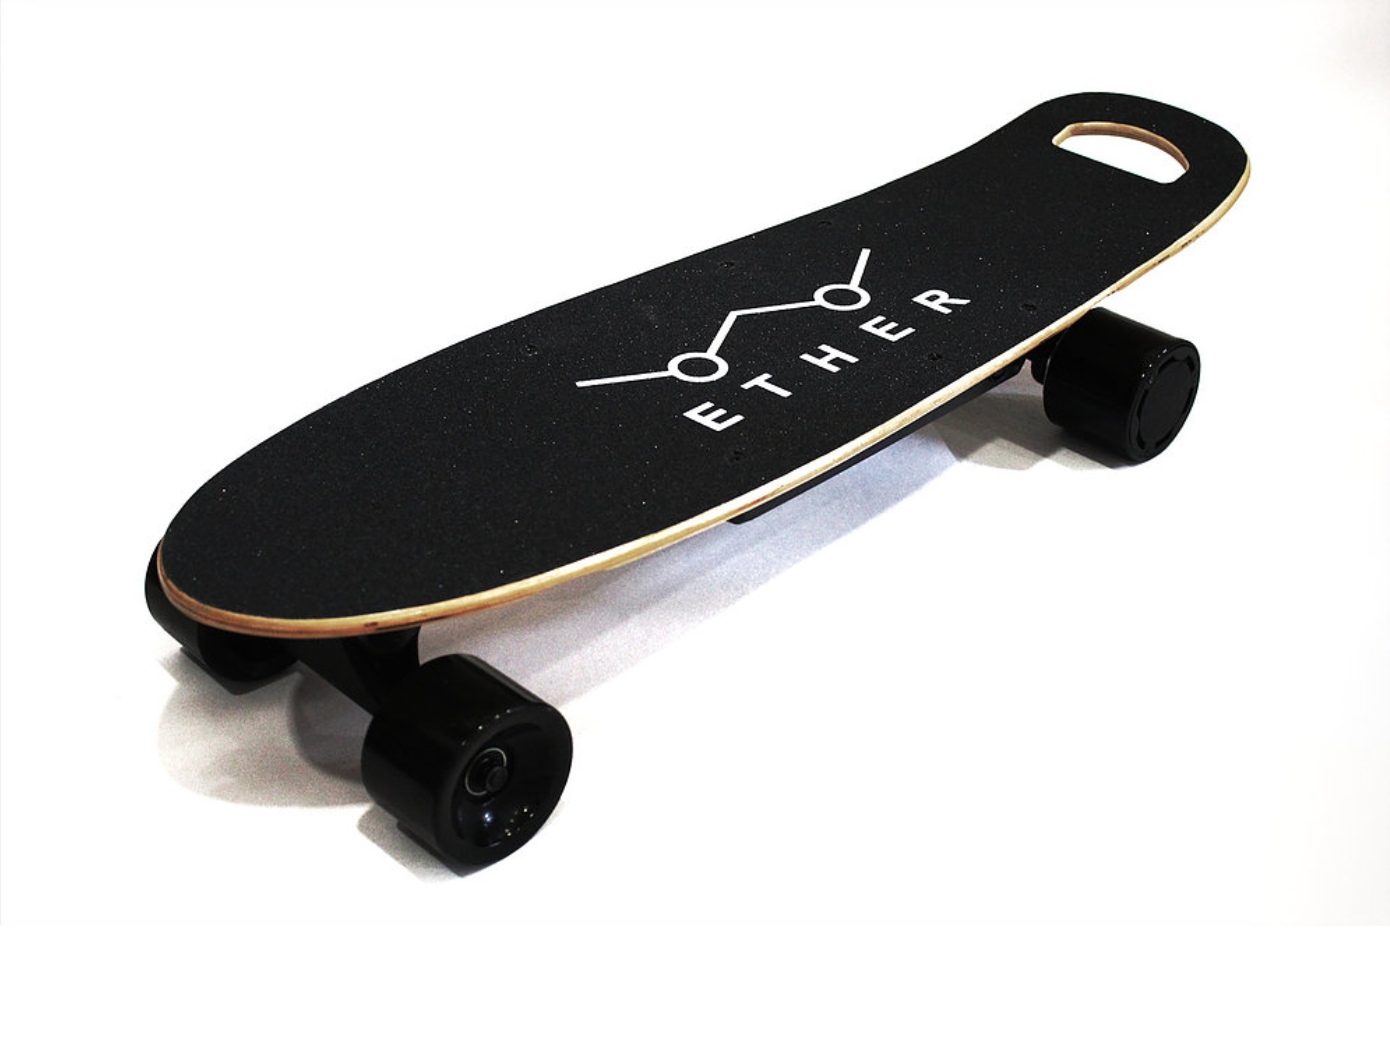 Ether Dual Electric Skateboard Electric Skateboard Skateboard Bamboo Skateboards